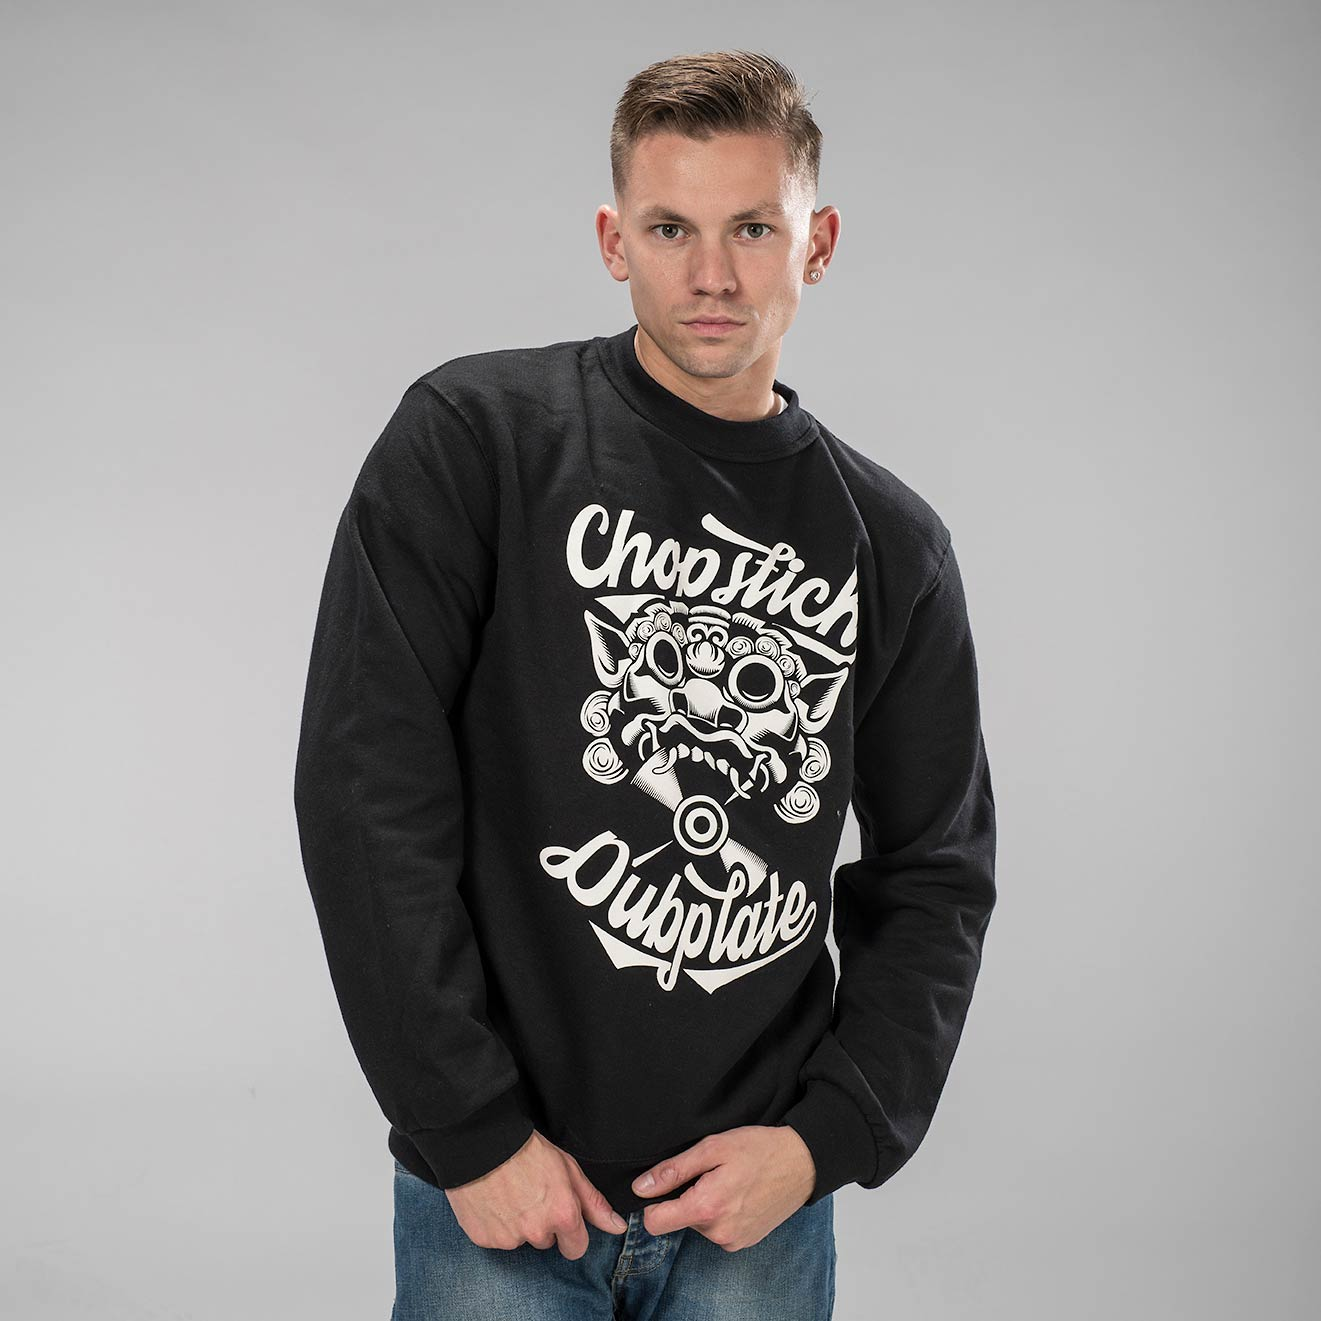 Chopstick Dubplate Black Sweatshirt